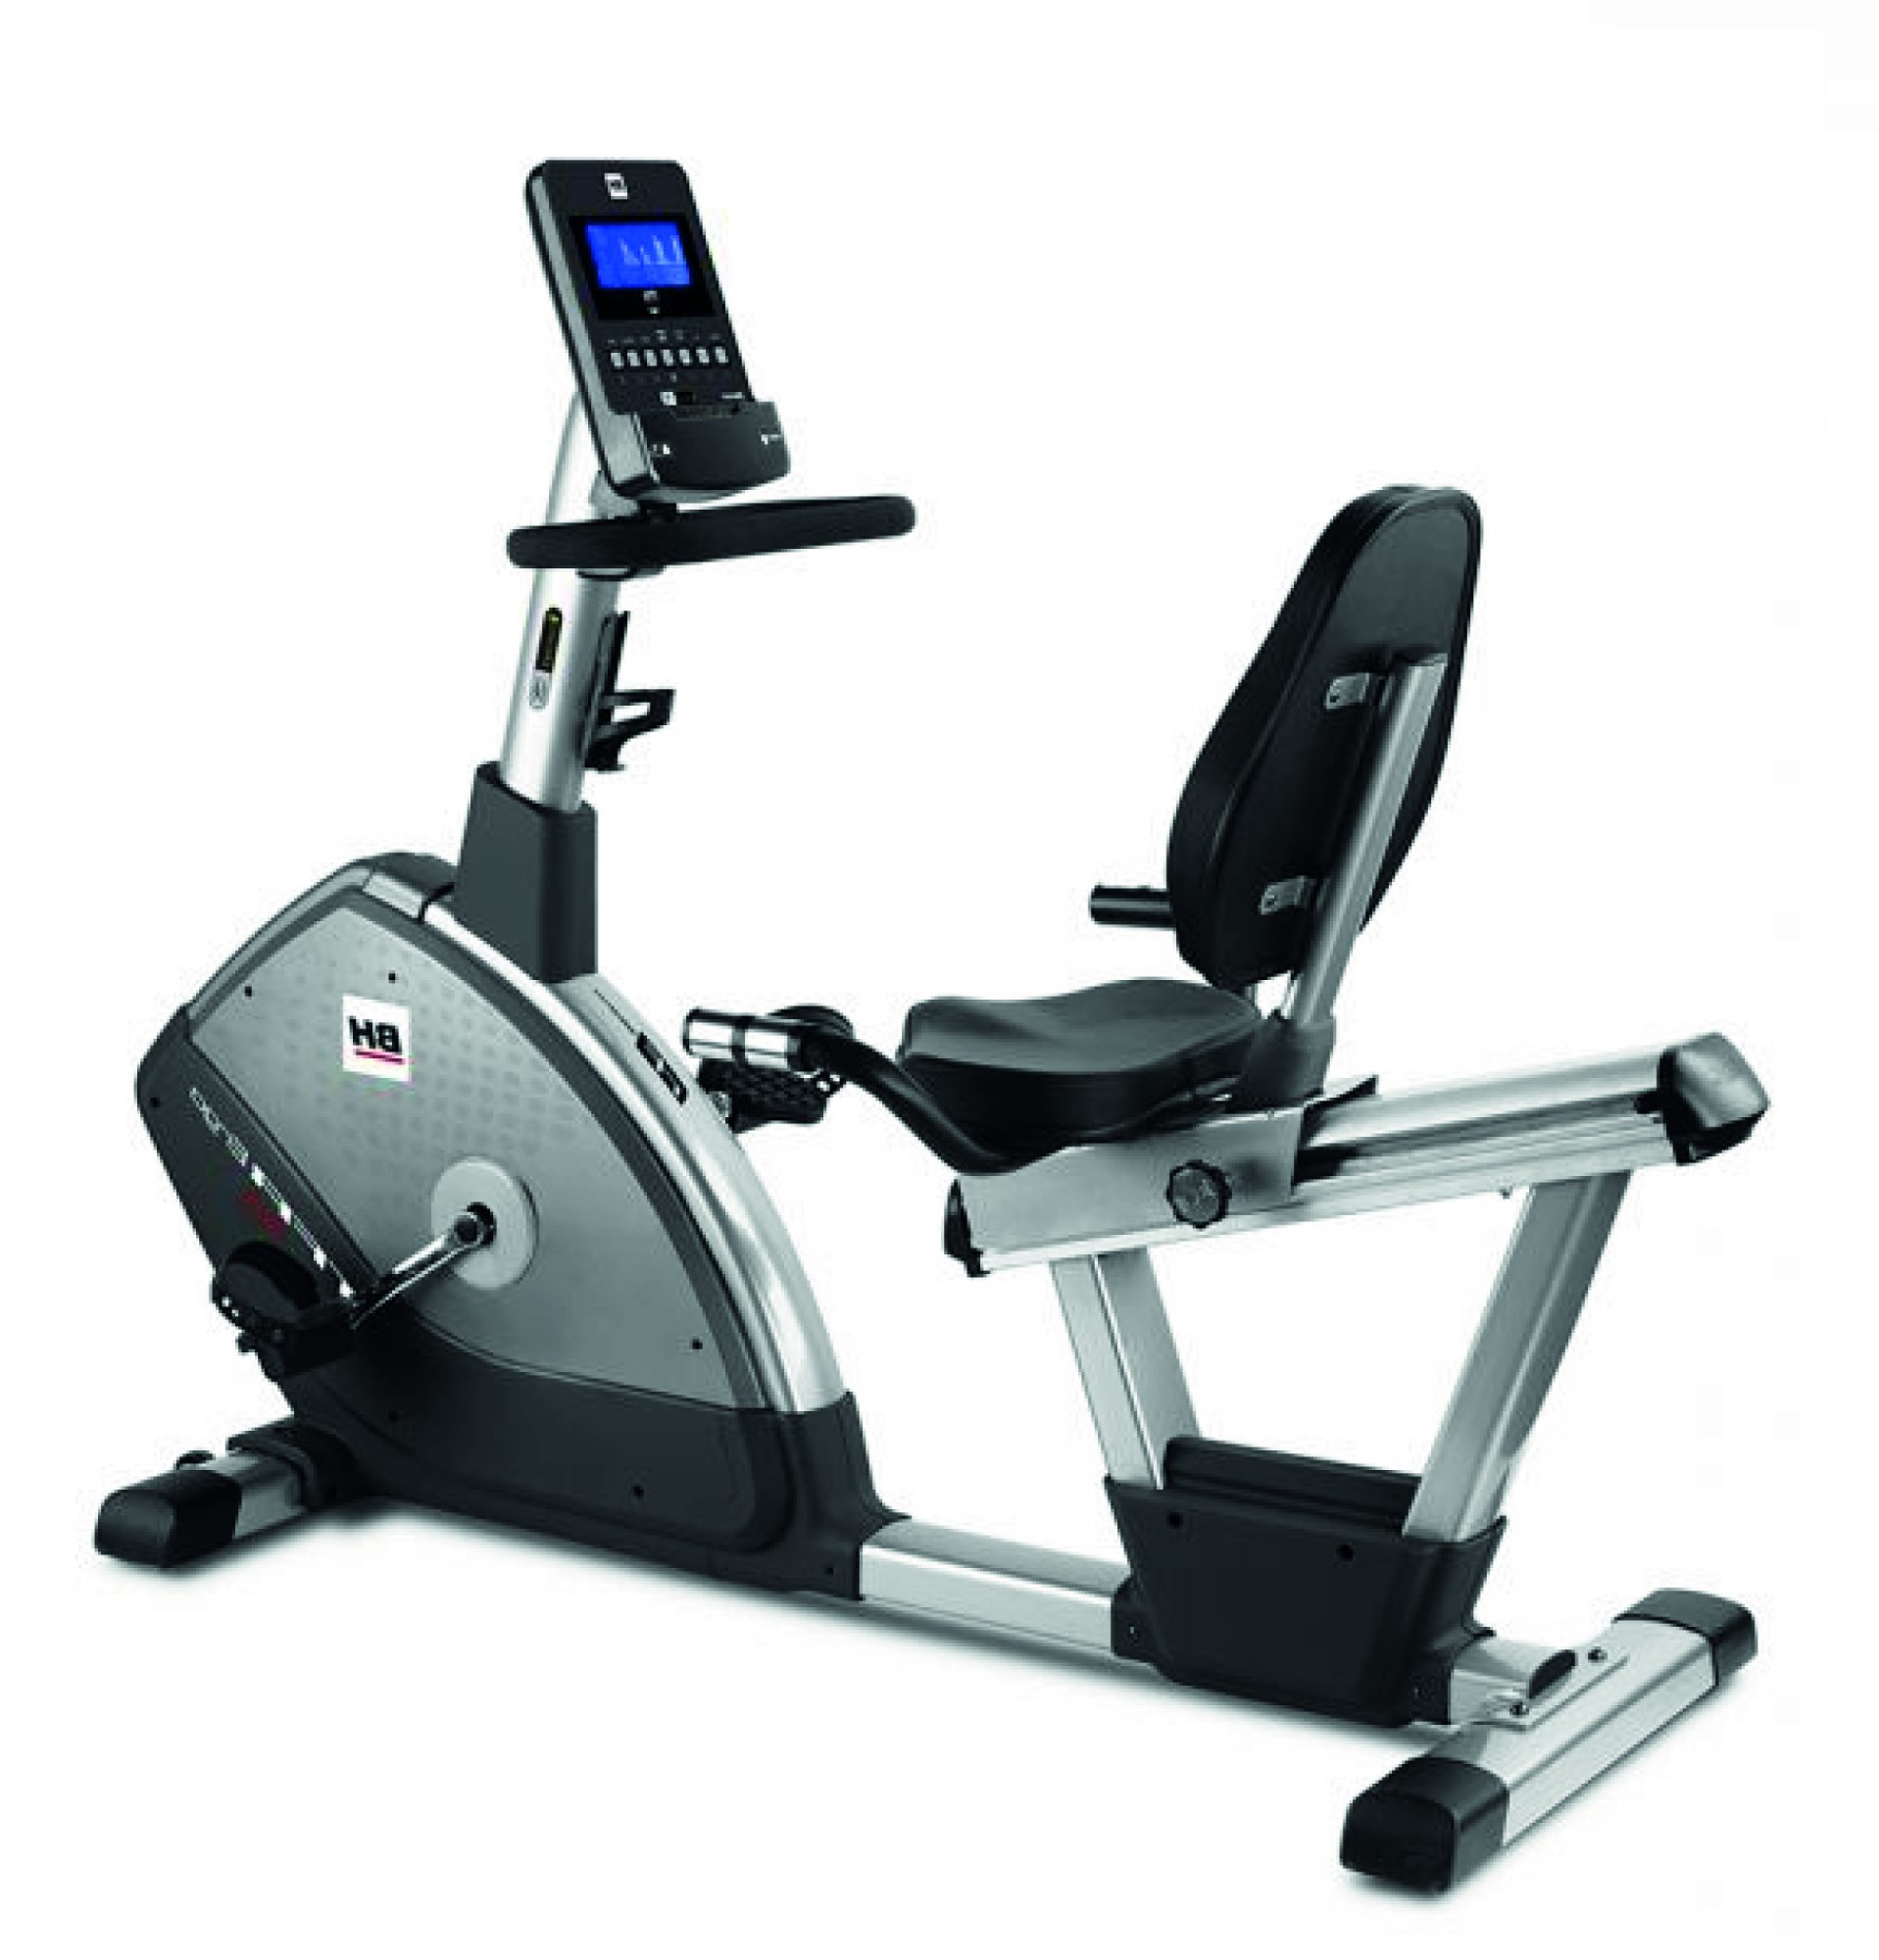 a0a00f09b9c Deluxe Home Recumbent Exercise Bike. Expand